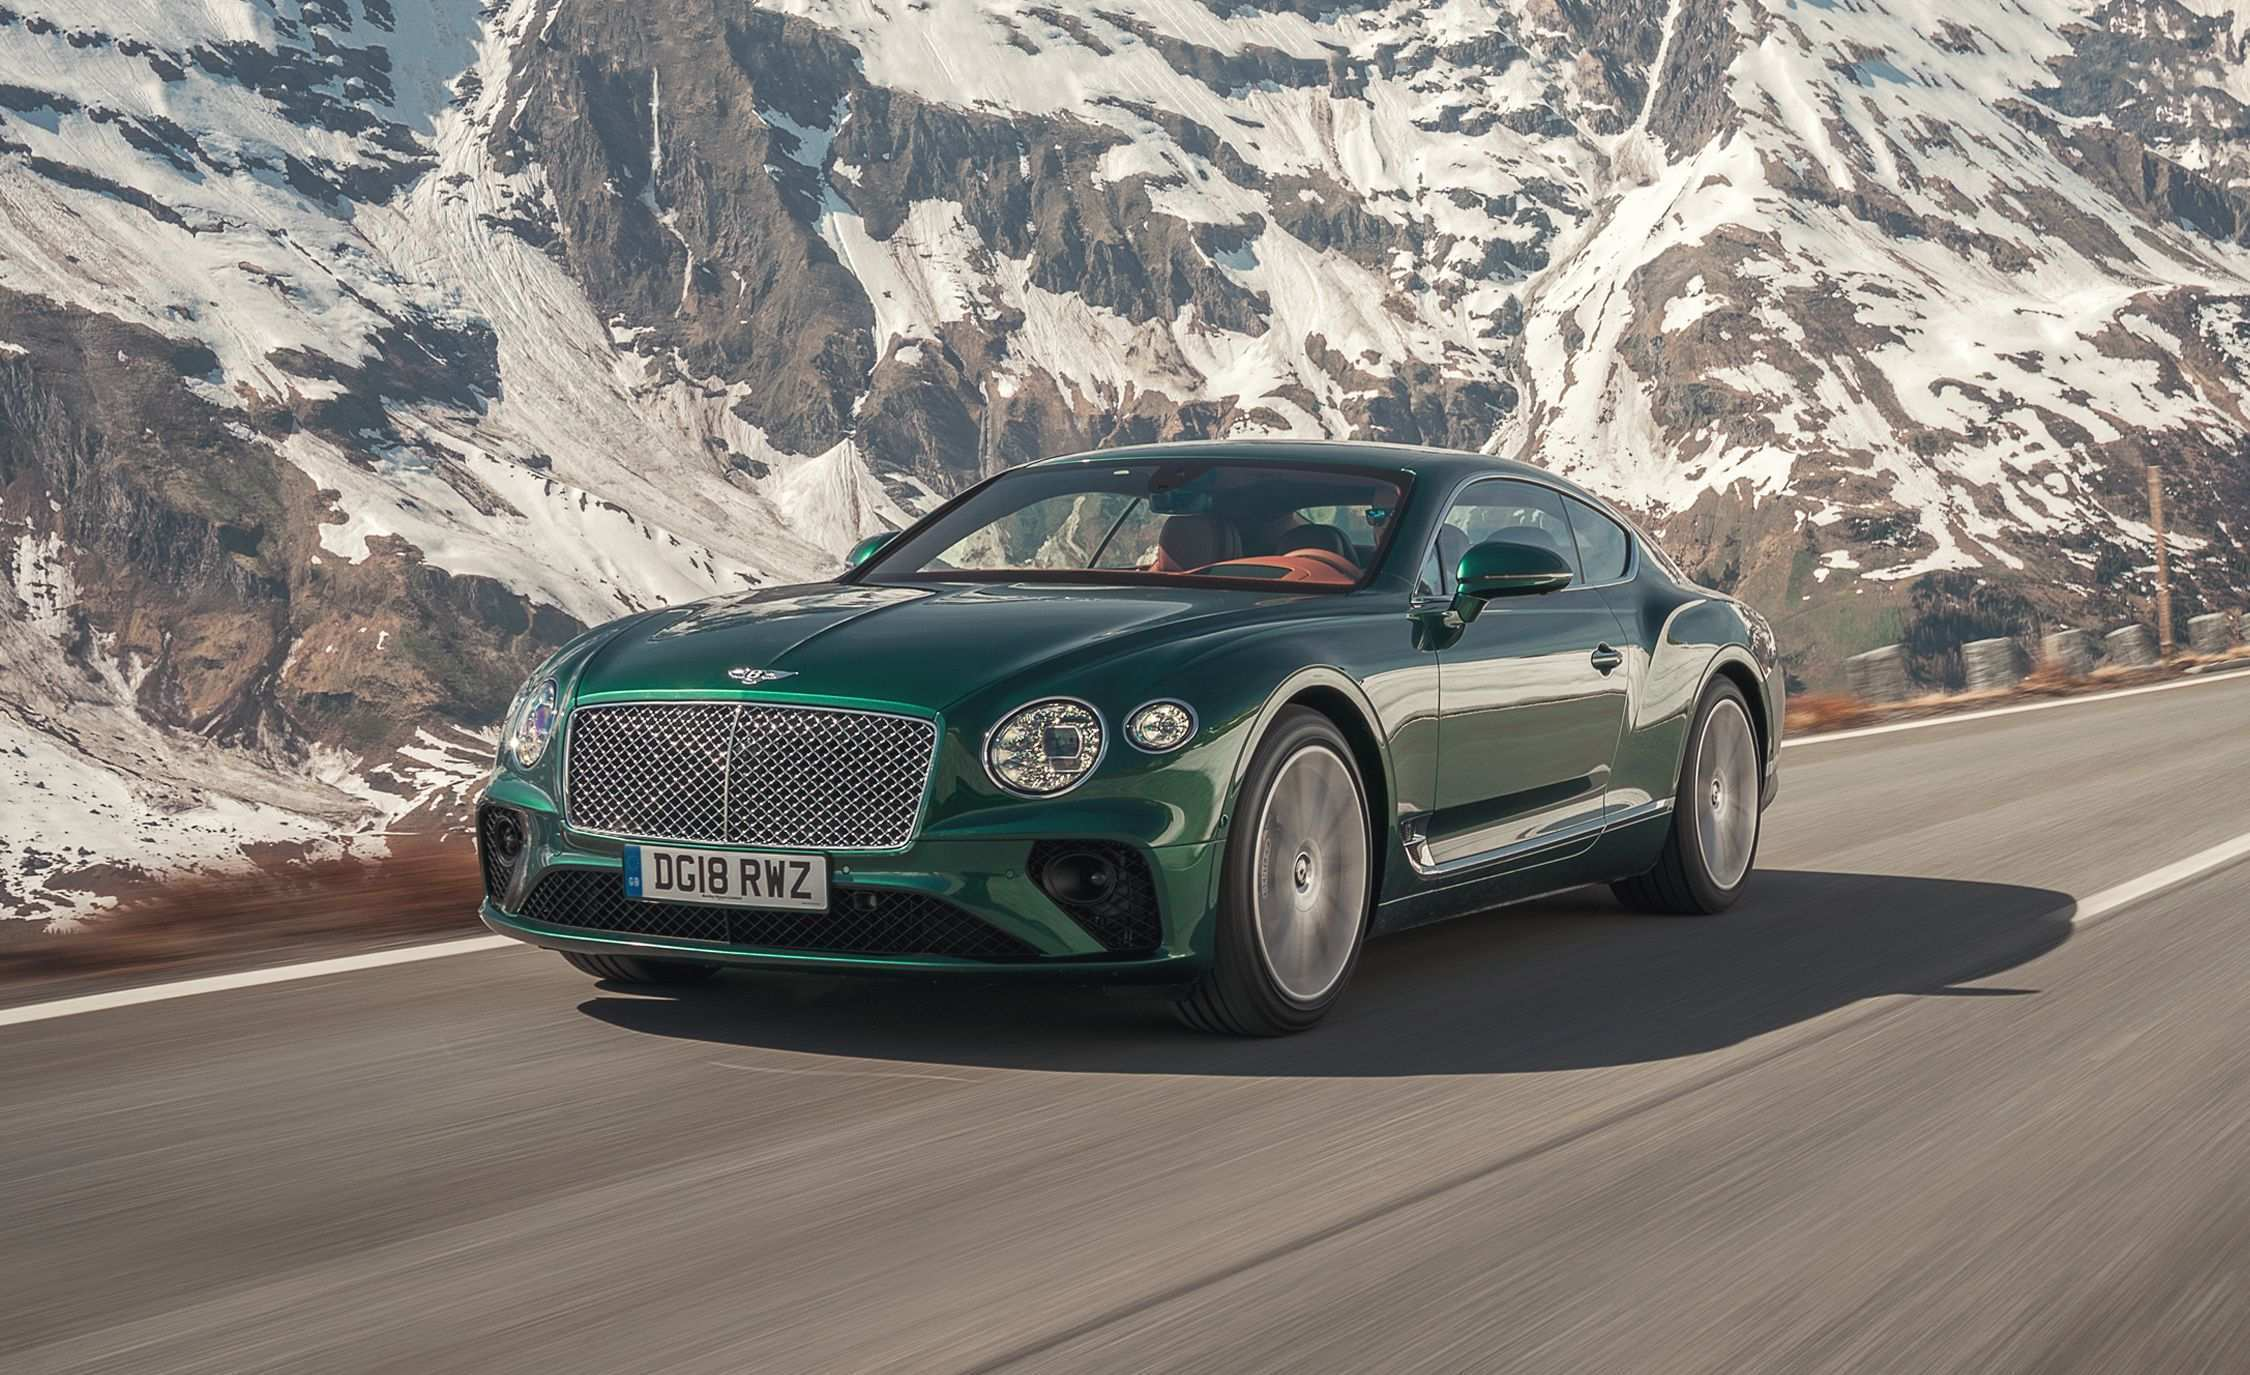 77 New 2019 Bentley Continental Gt Specs Exterior and Interior with 2019 Bentley Continental Gt Specs